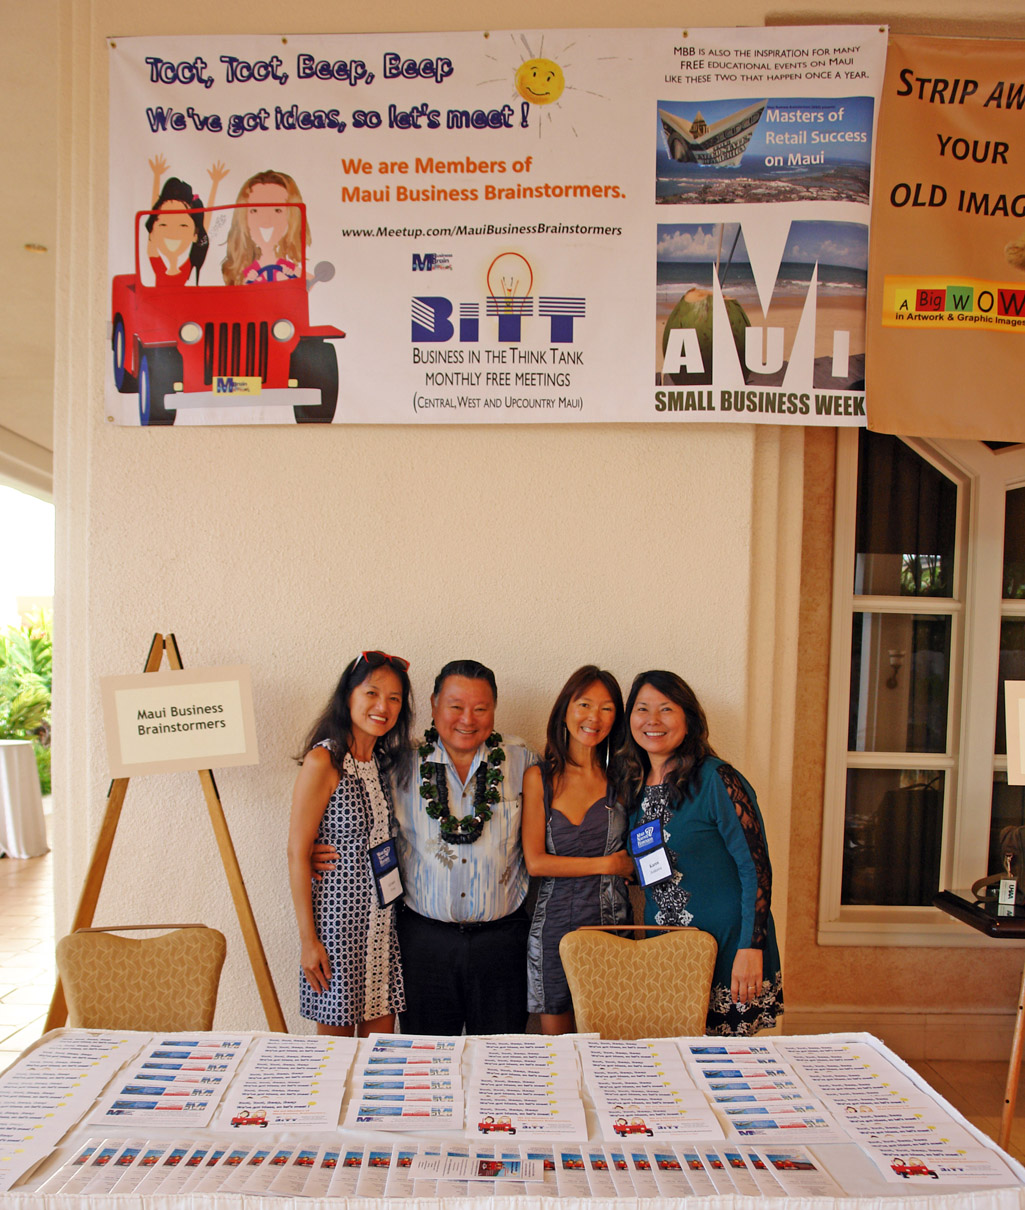 (Left to right) MBBer Grace Fung, Maui Mayor Alan Arakawa, Maui County Business Resource Center Manager Karen Arakawa and MBBer Juliet Gray at the MBB table during the 2015 Hui Holomua 9th Business Fest. MBB photo.